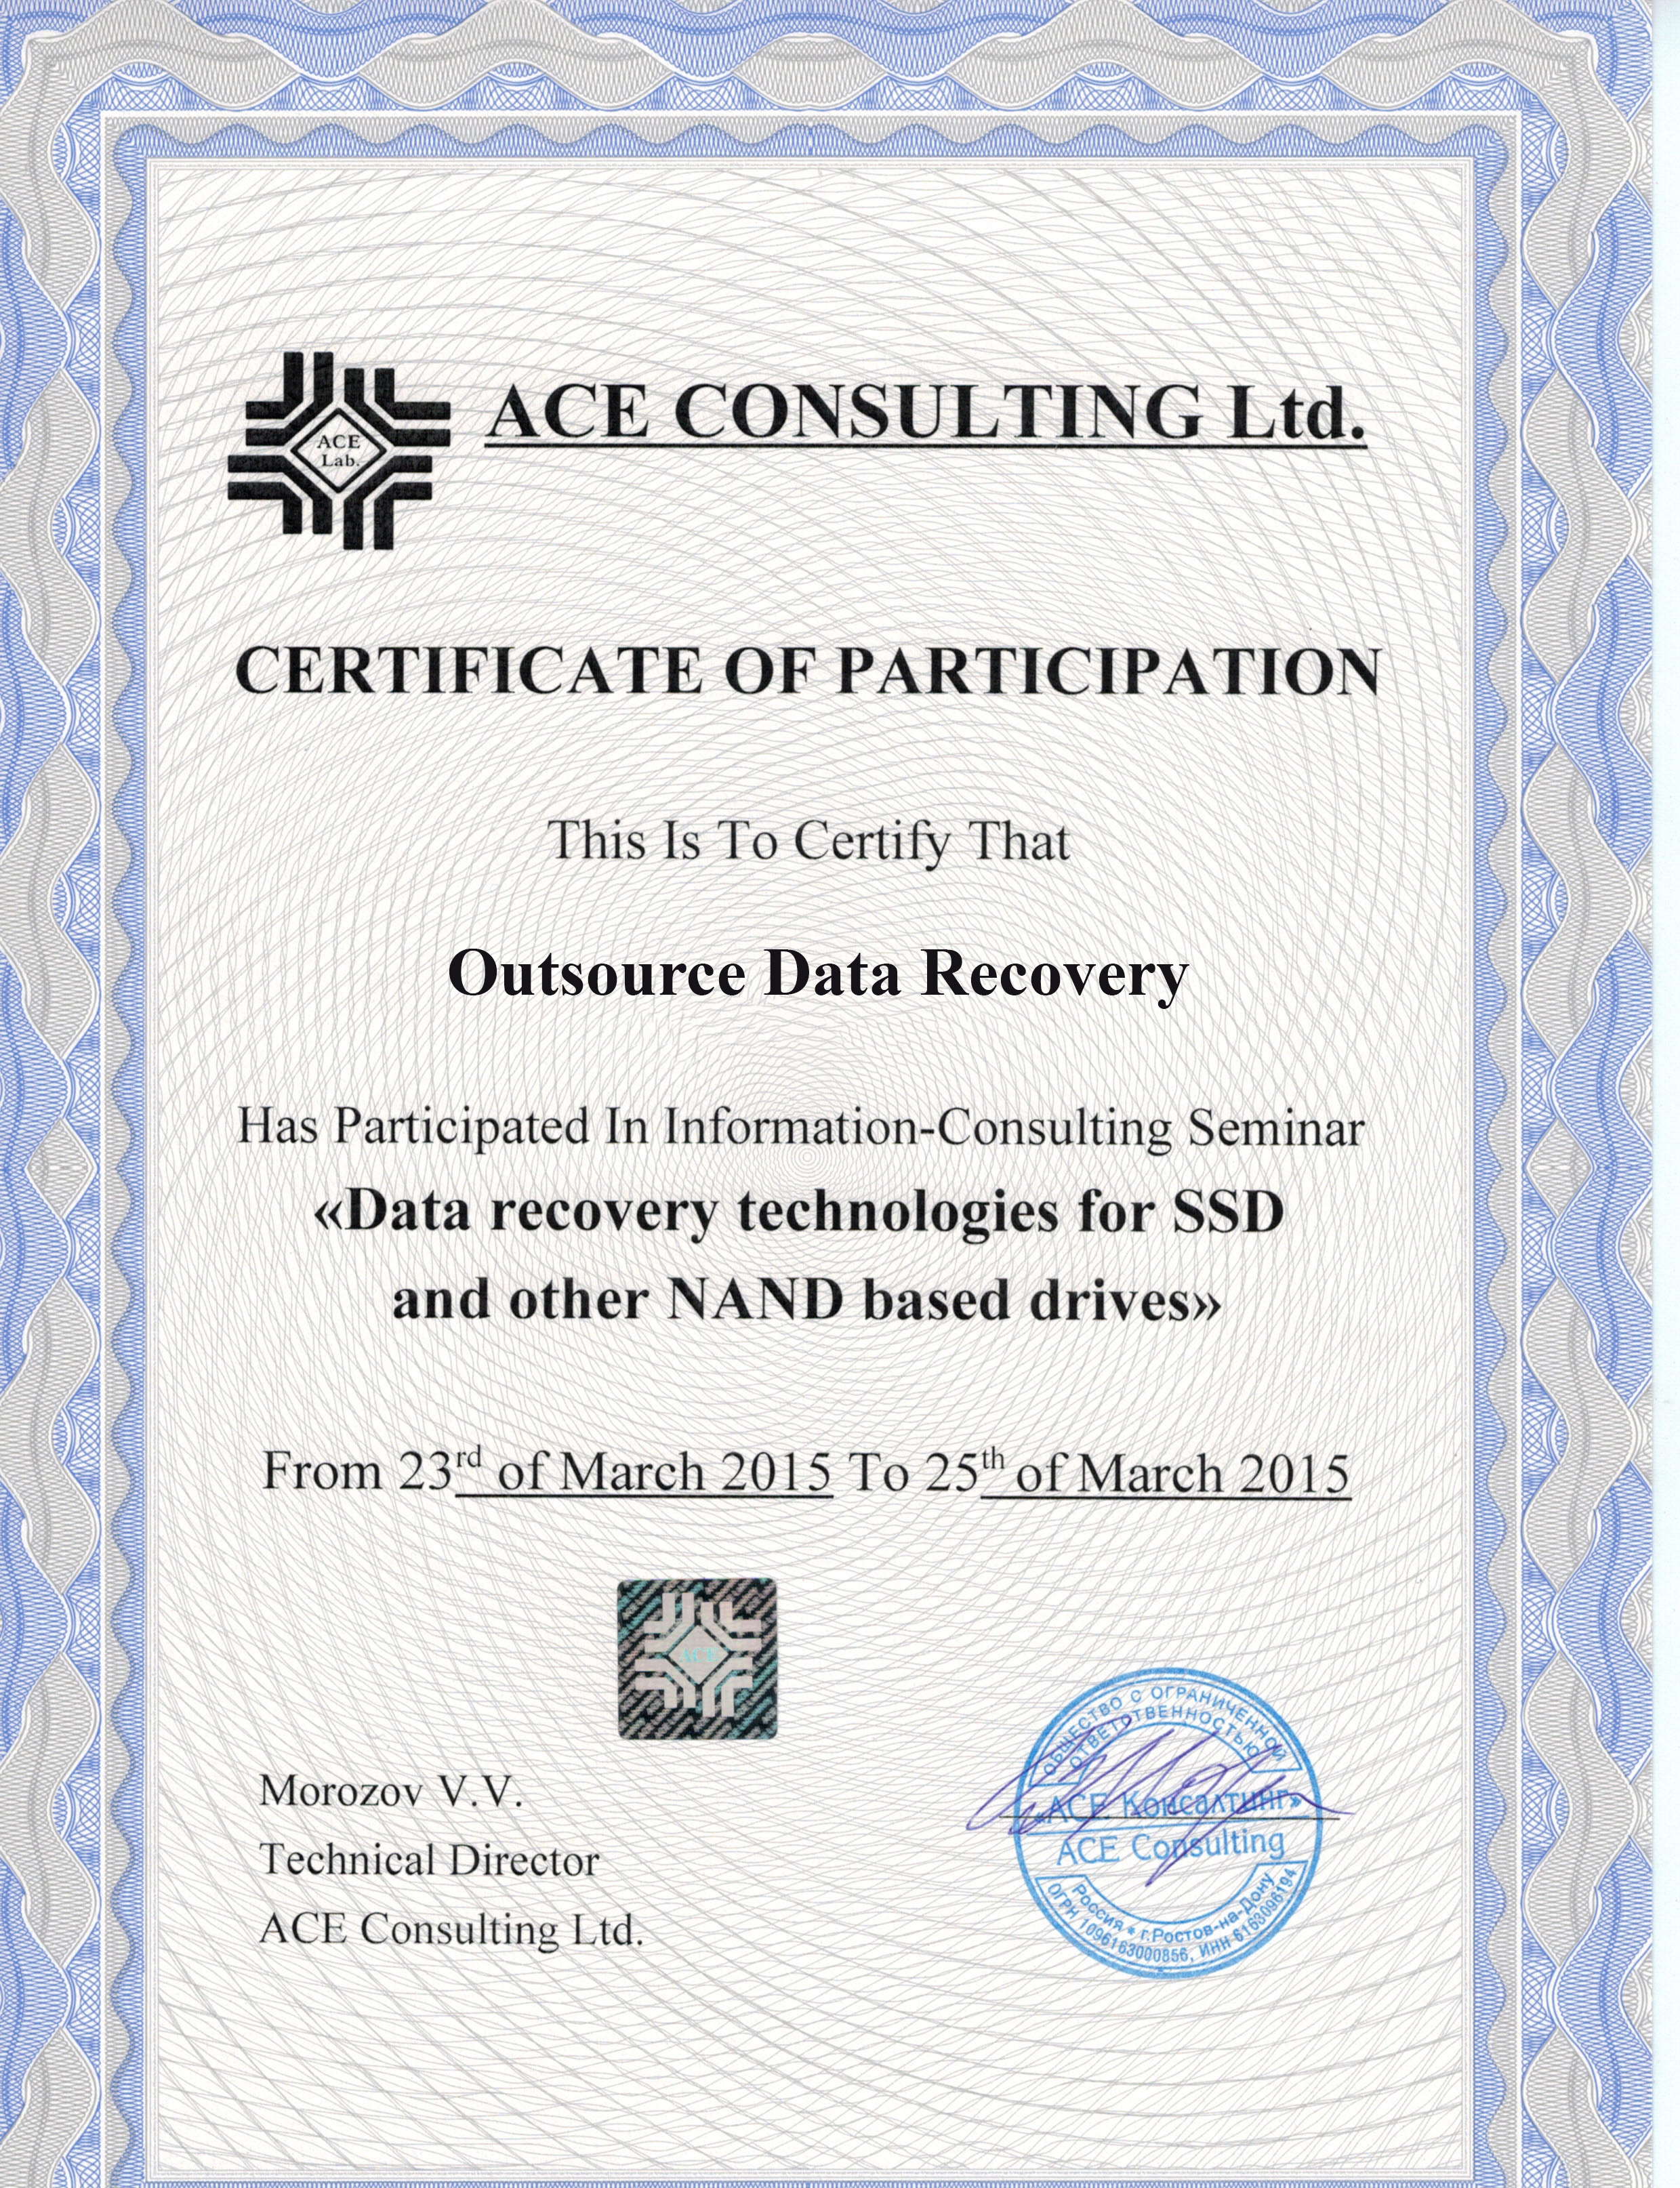 Outsource Data Recovery SSD Certification